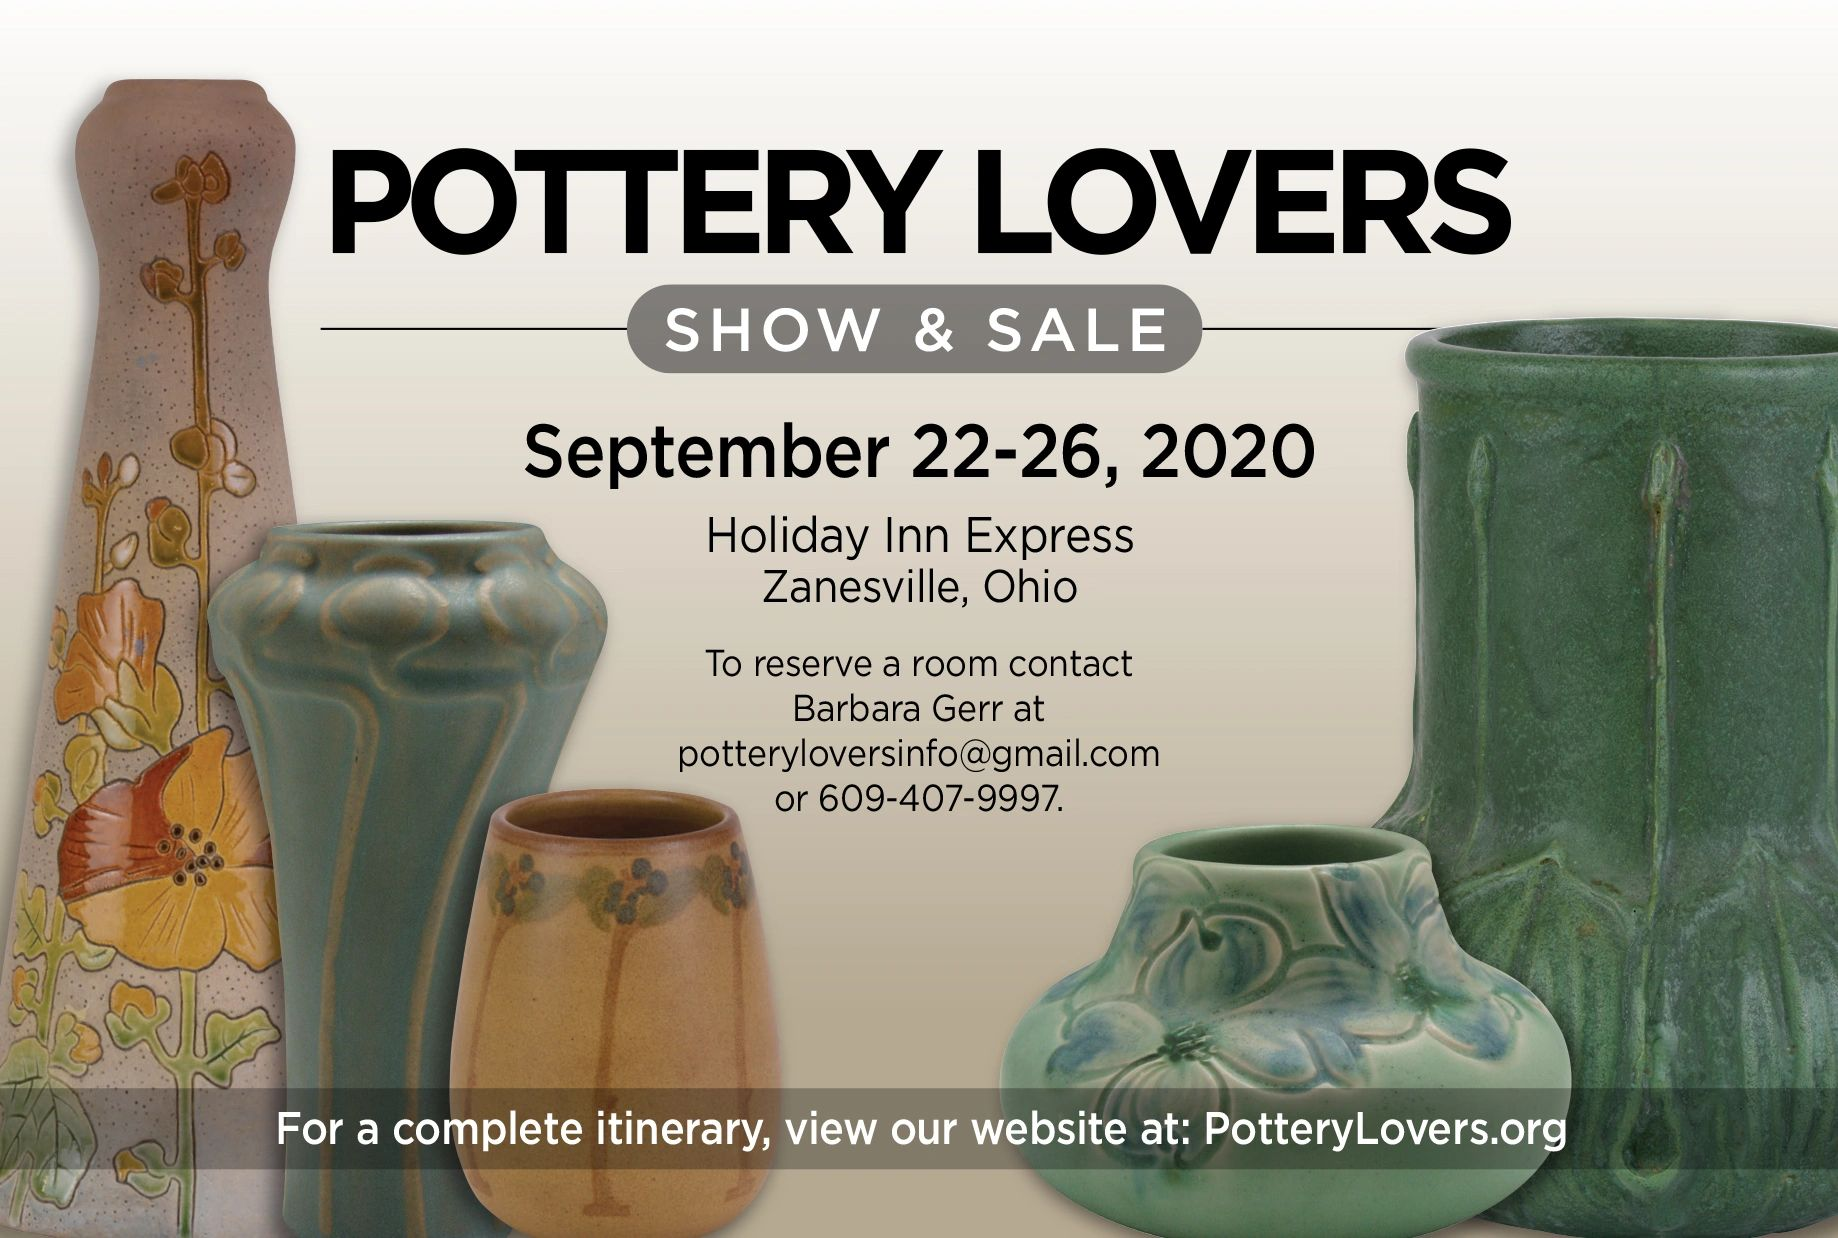 Pottery Lovers Show and Sale Dates